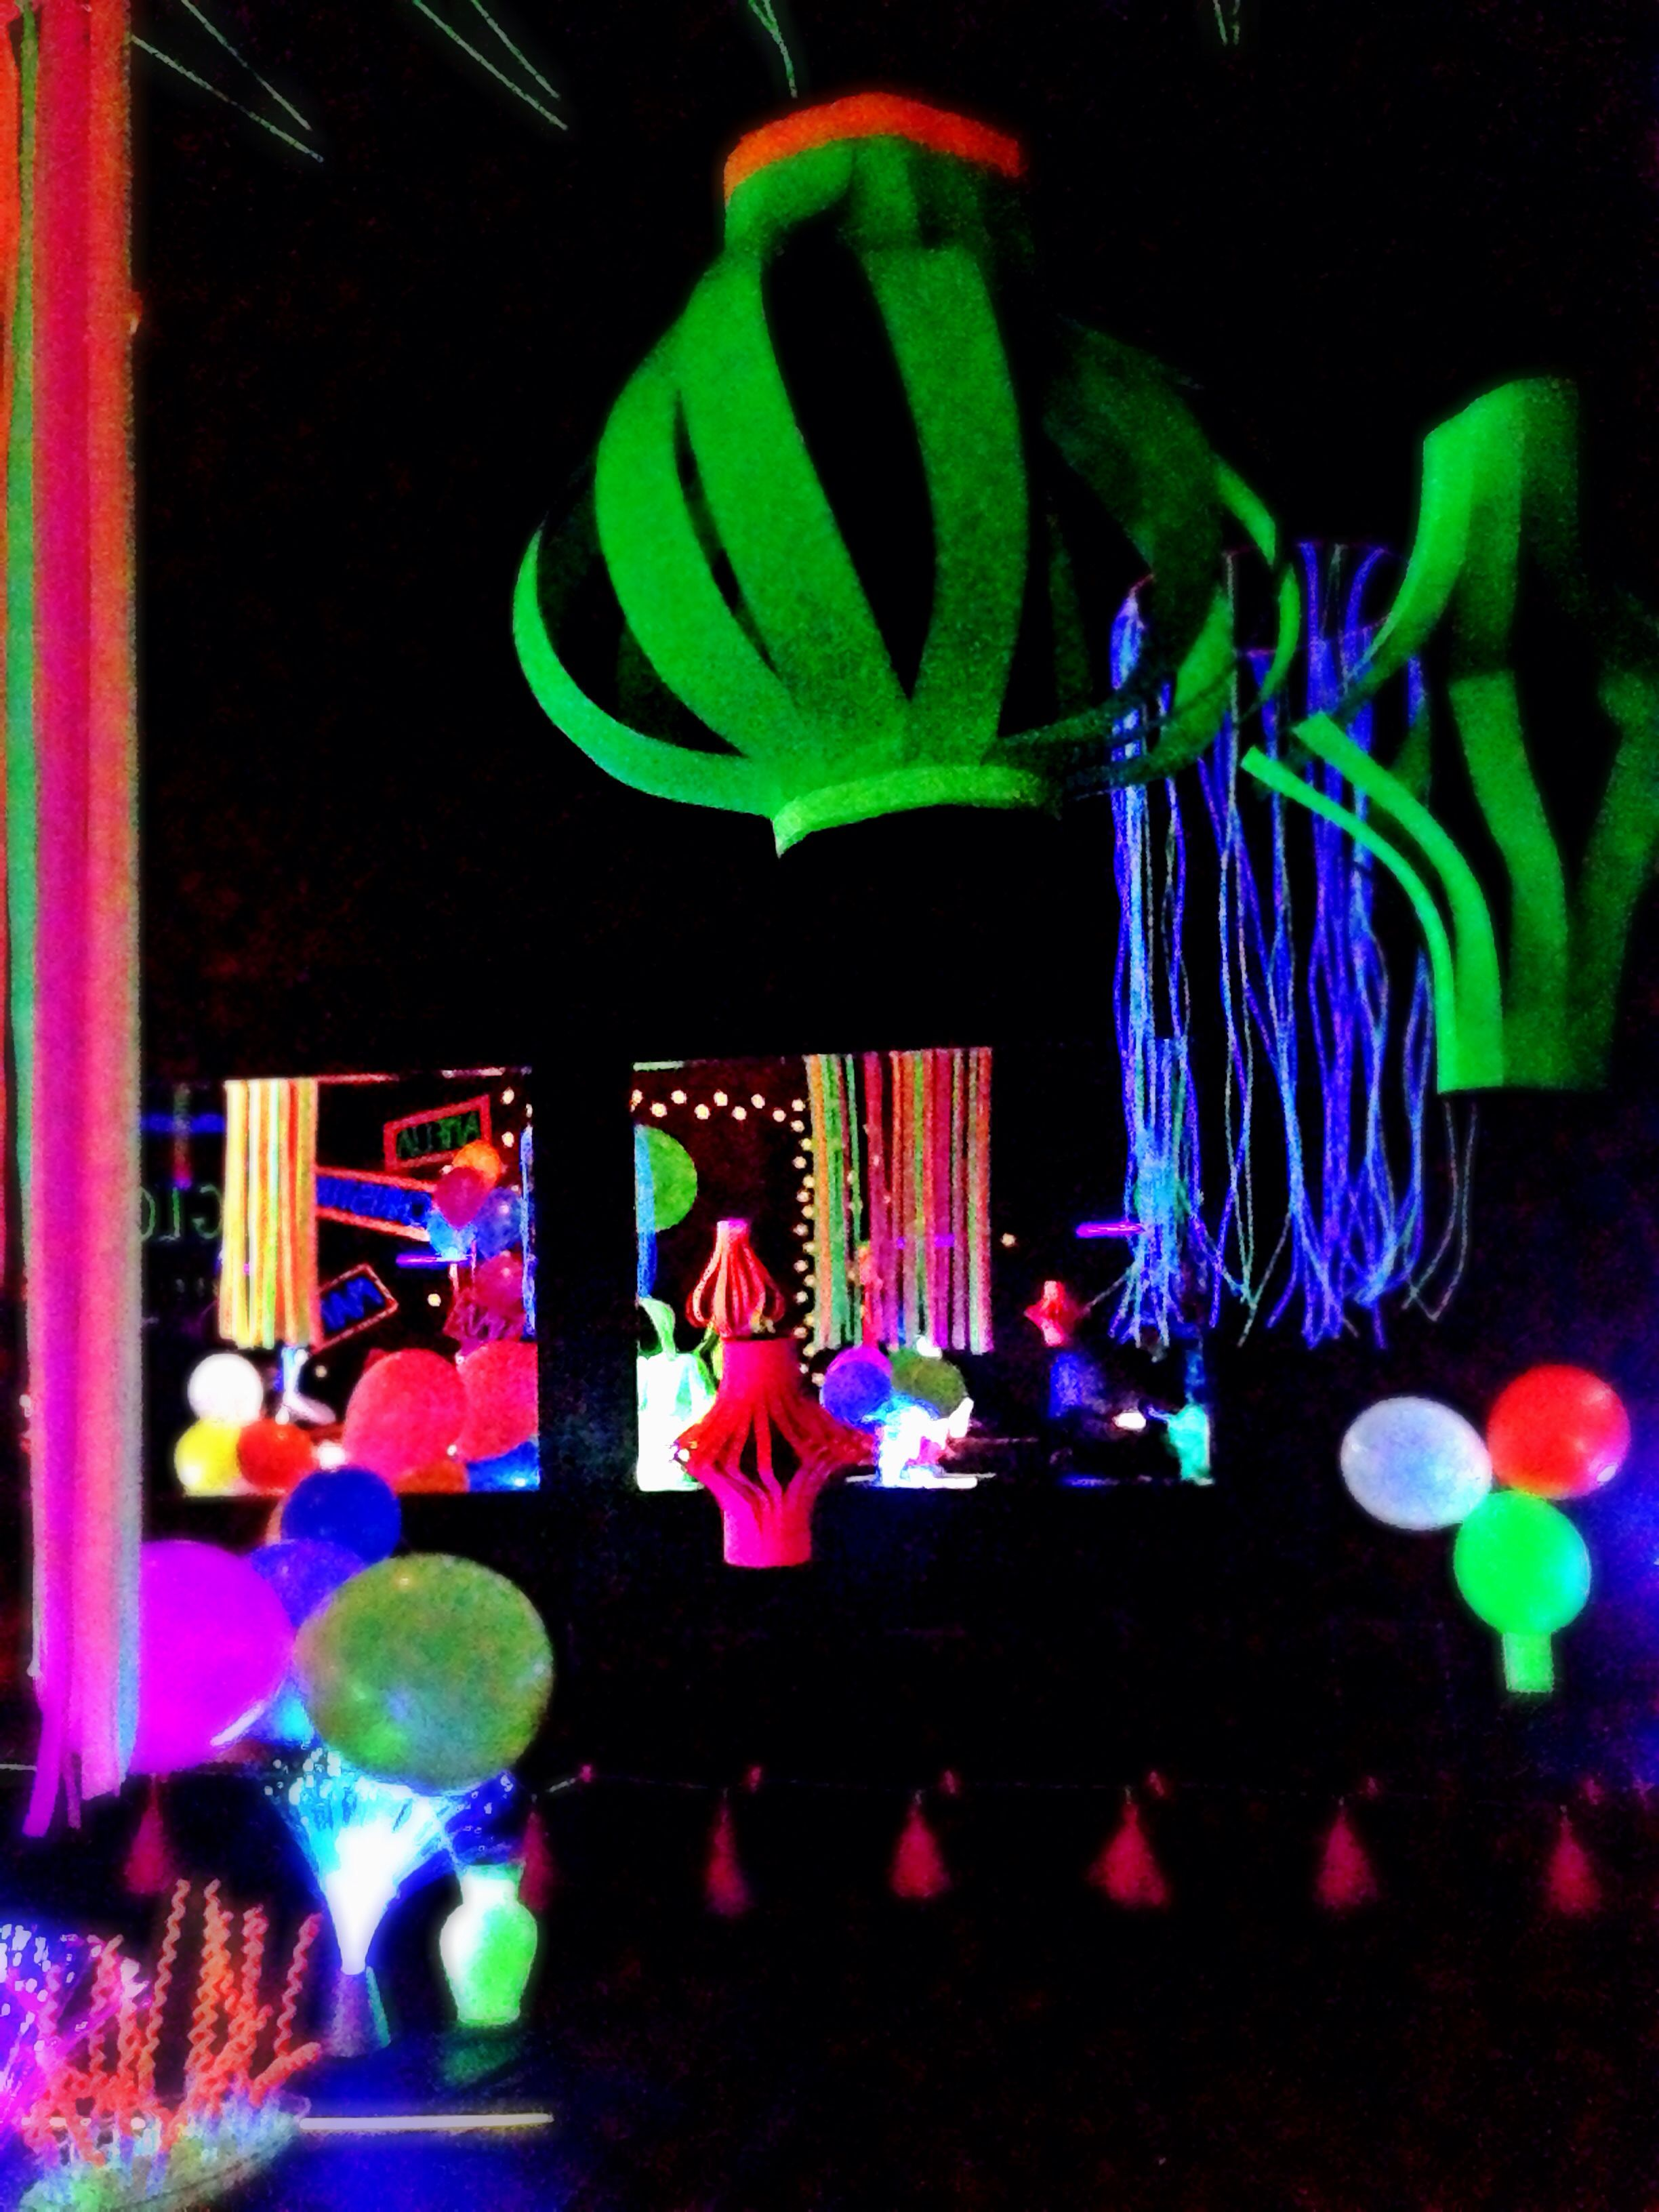 Pin By Peggy Jackson On Create Glow In The Dark Fun Glow Stick Party Glow Party Decorations Glow Party